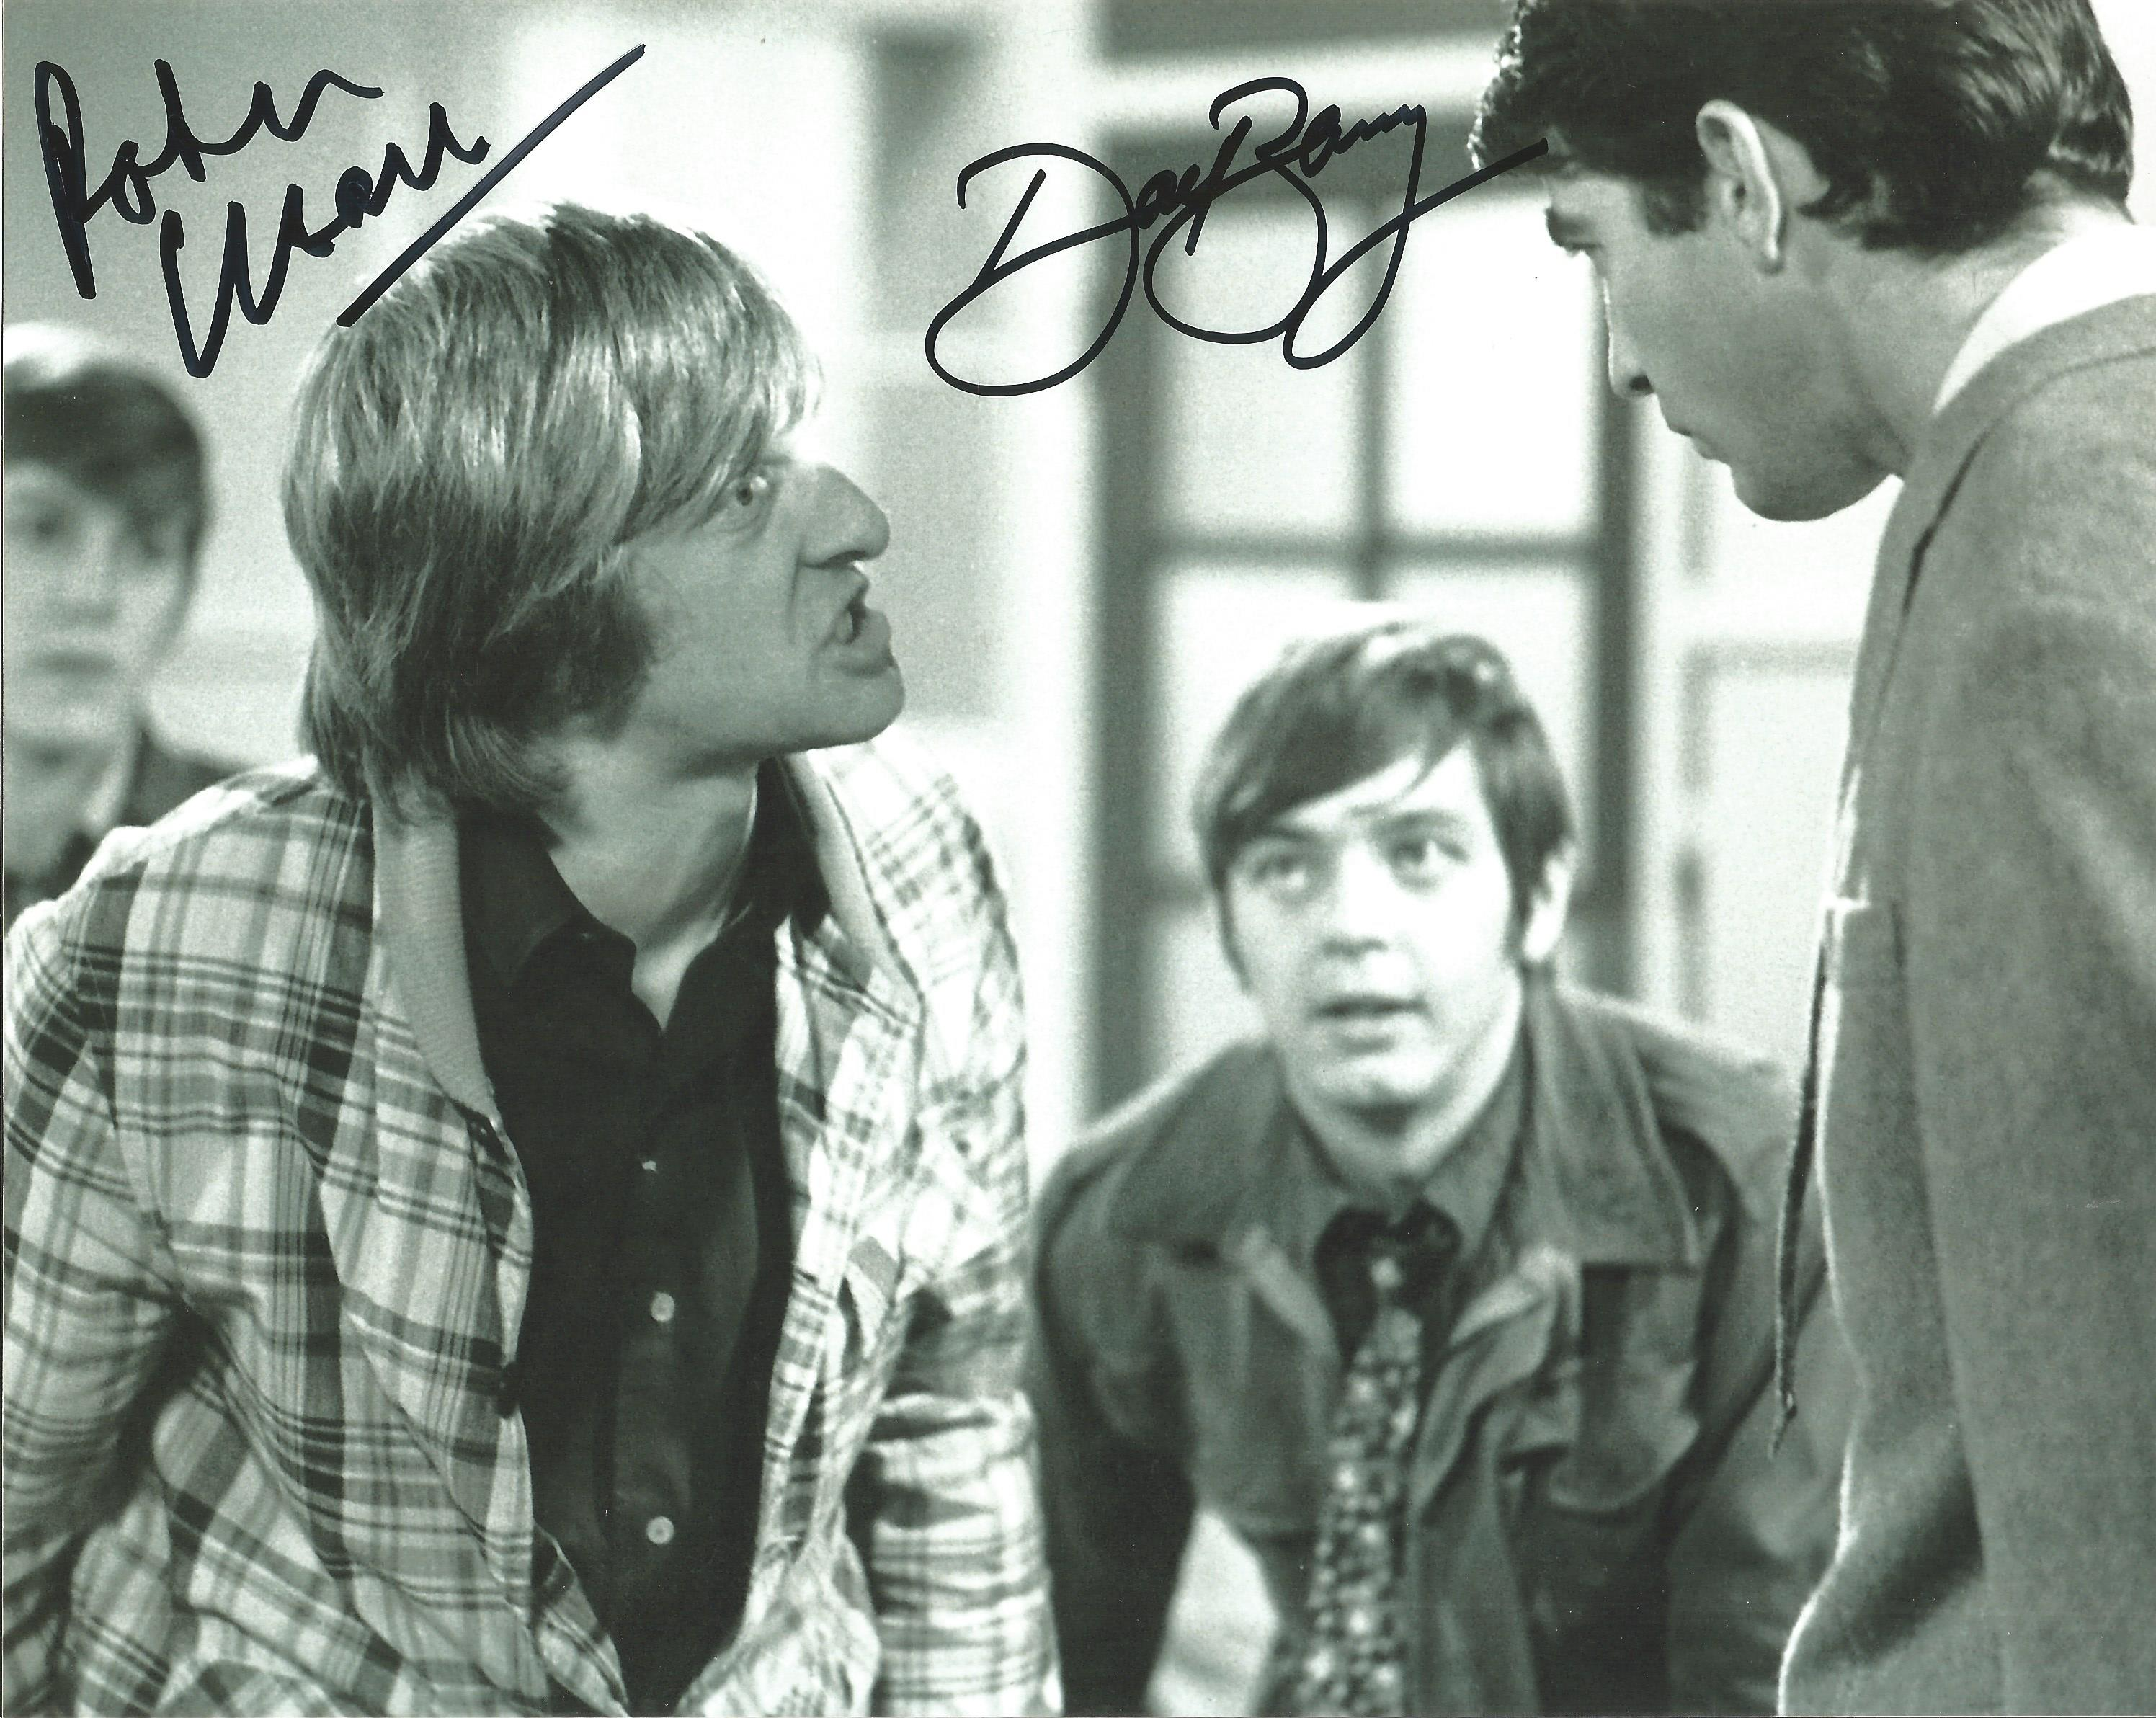 Peter Cleall and Dave Barry ,Fenn Street Gang signed b/w 8x10 photograph. Good condition. All